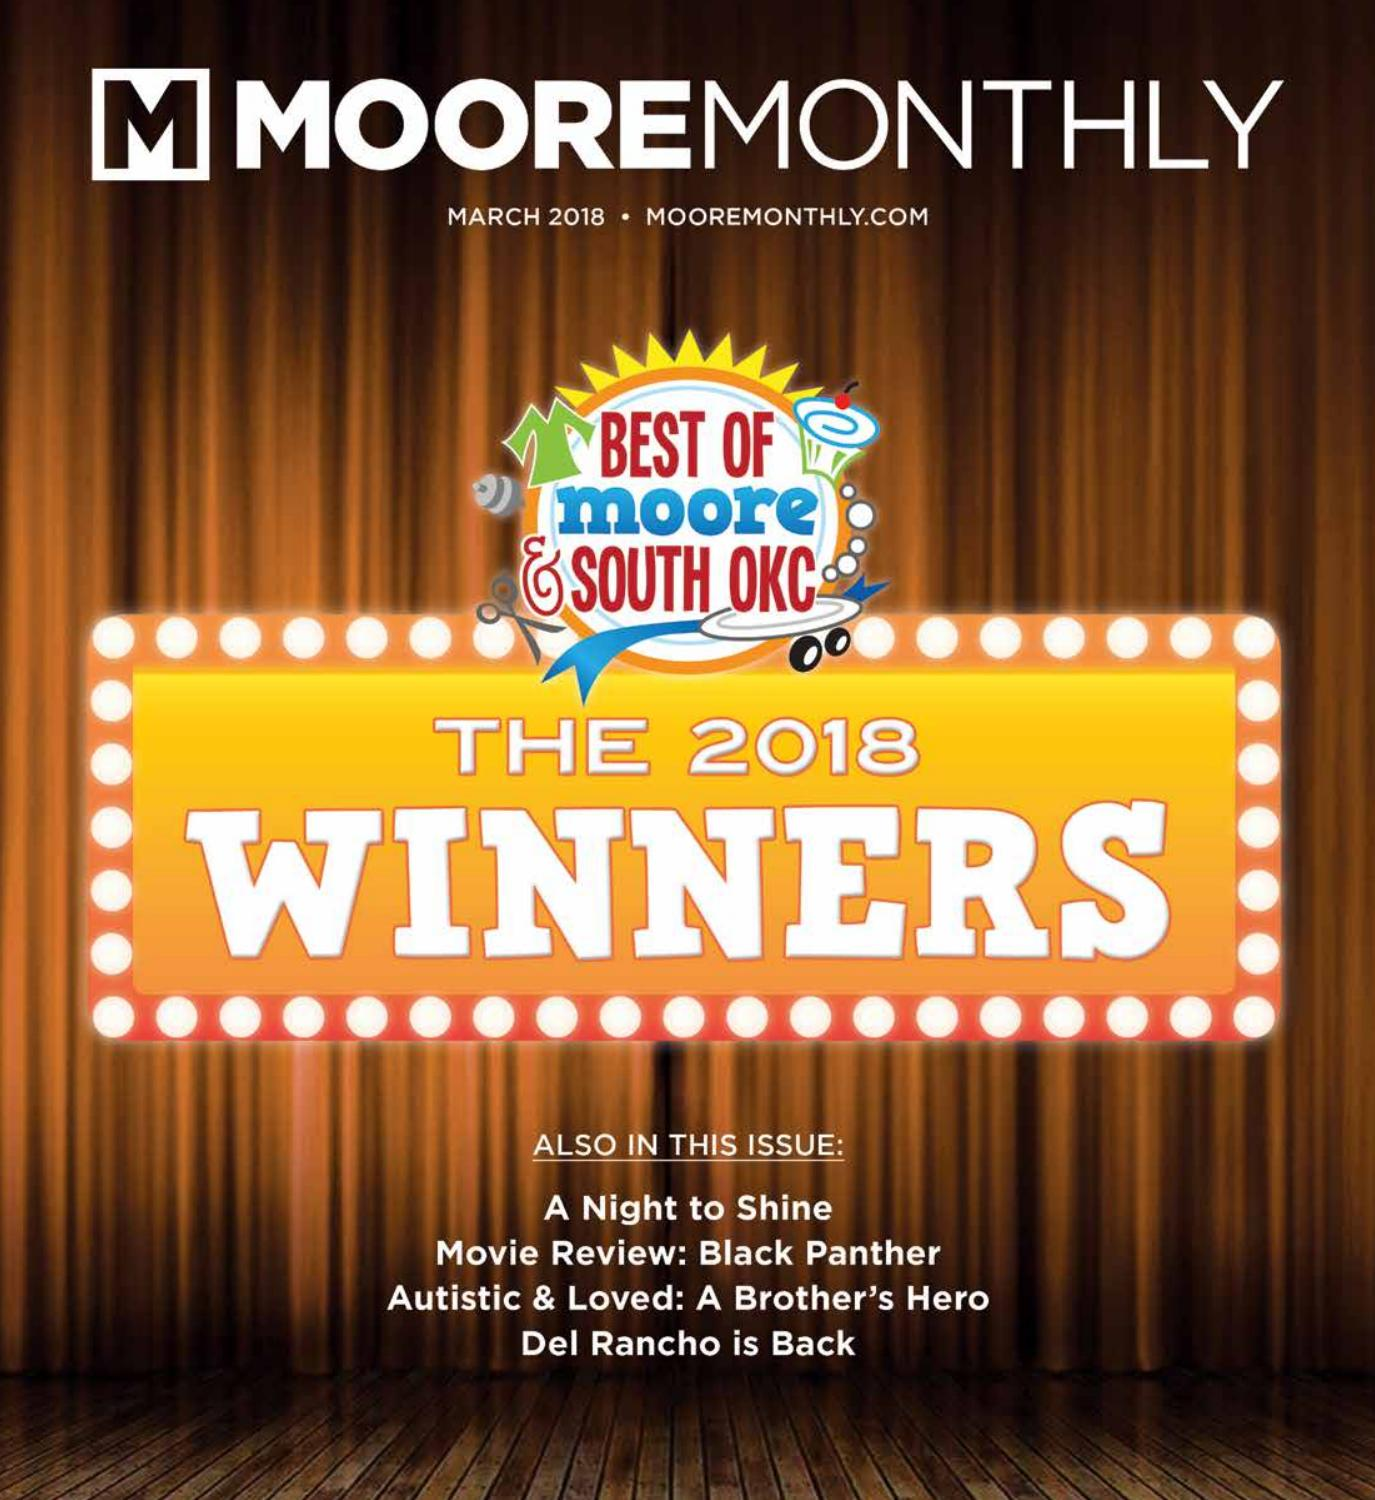 MM Mar 2018 by Moore Monthly - issuu